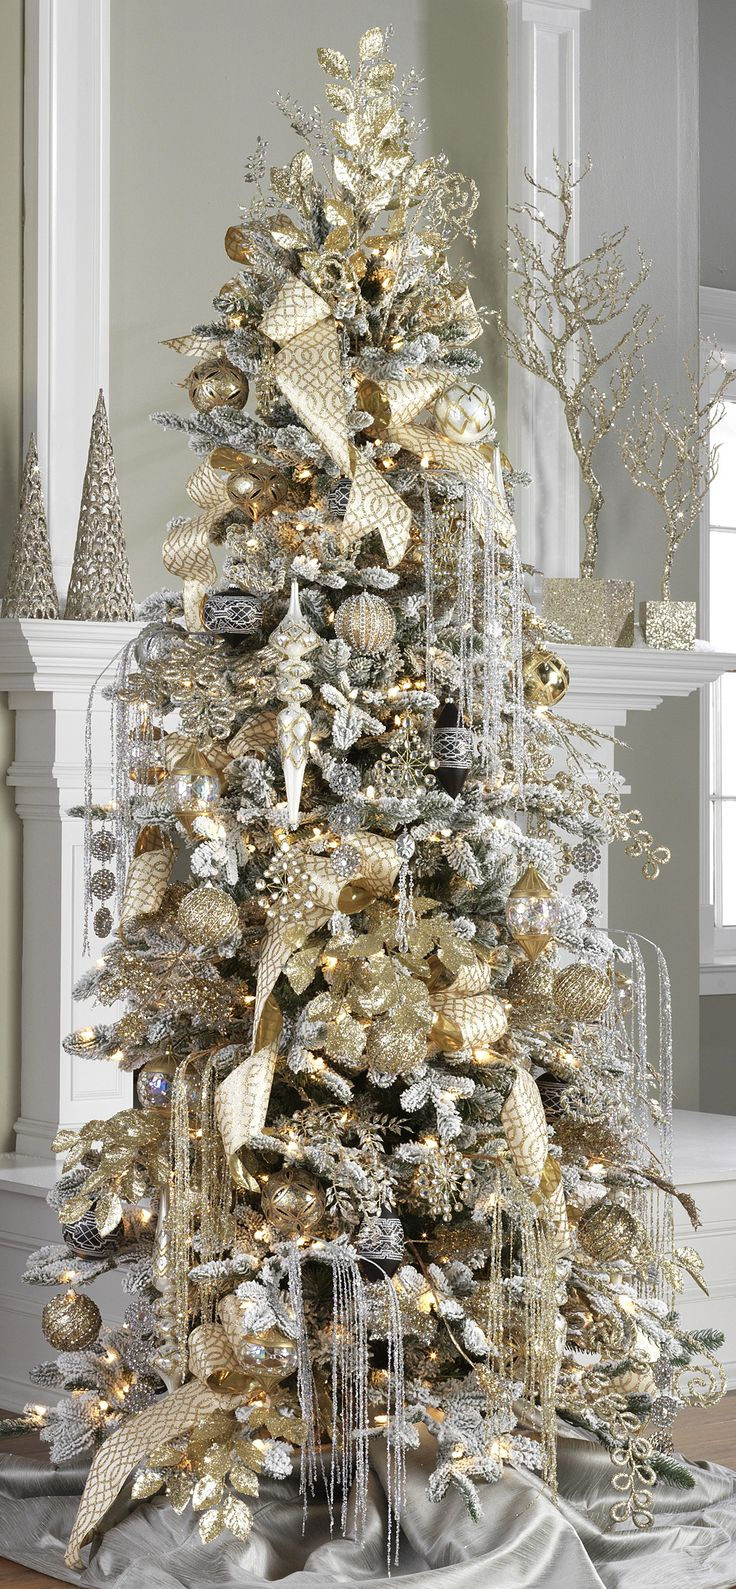 25 best ideas about gold christmas decorations on pinterest gold christmas gold christmas. Black Bedroom Furniture Sets. Home Design Ideas